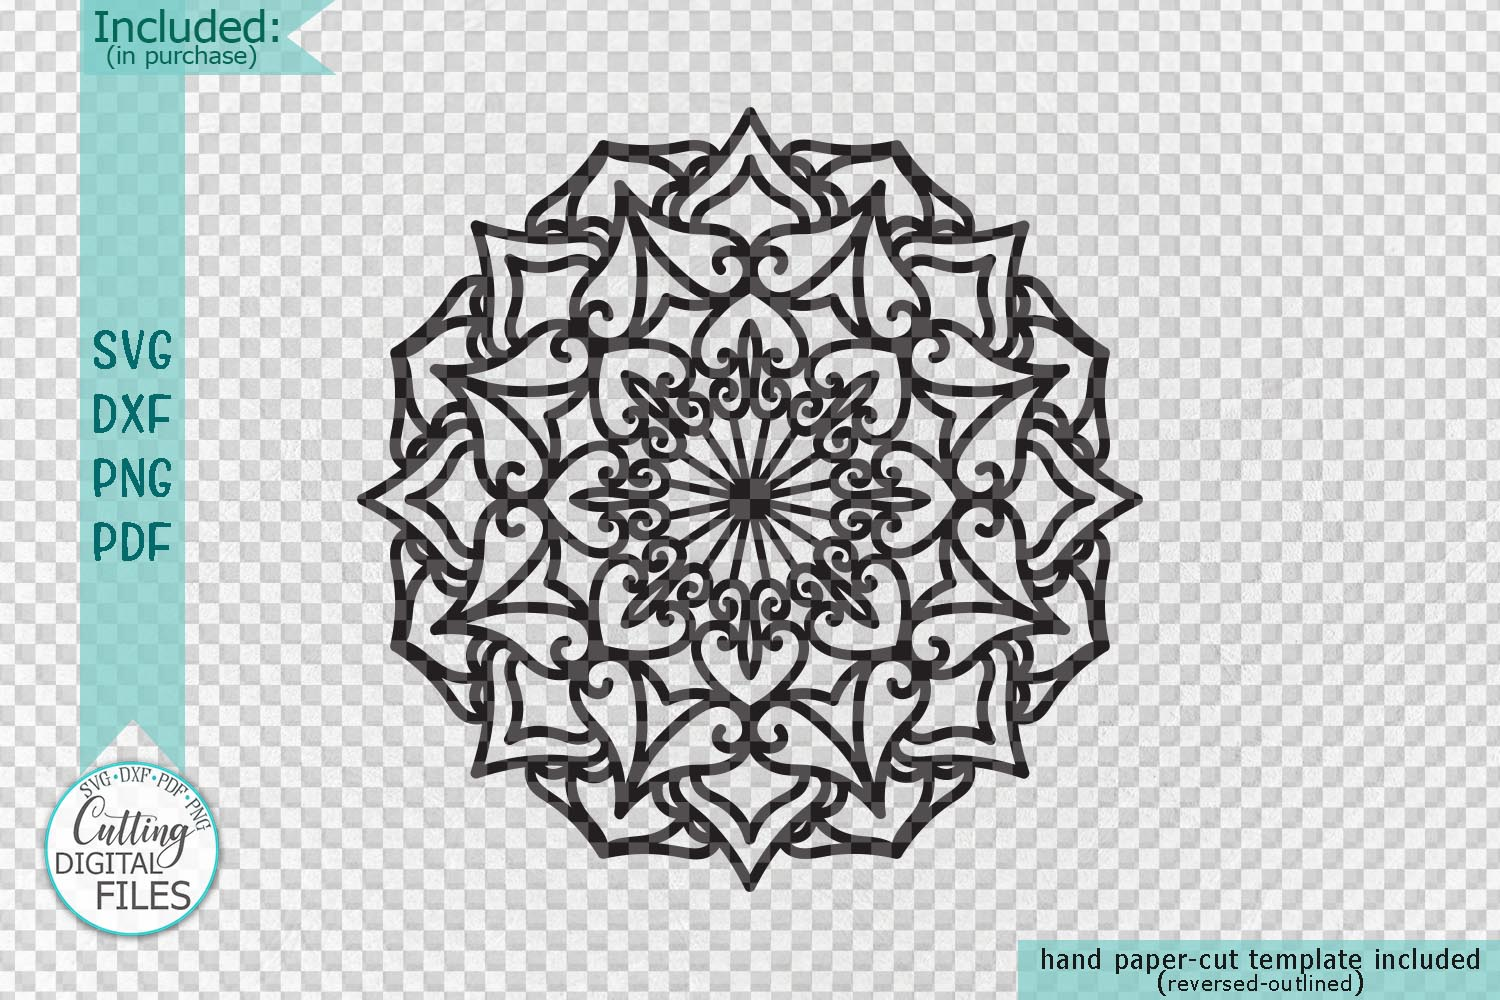 Mandala set corner half border plotter cut svg dxf templates example image 2